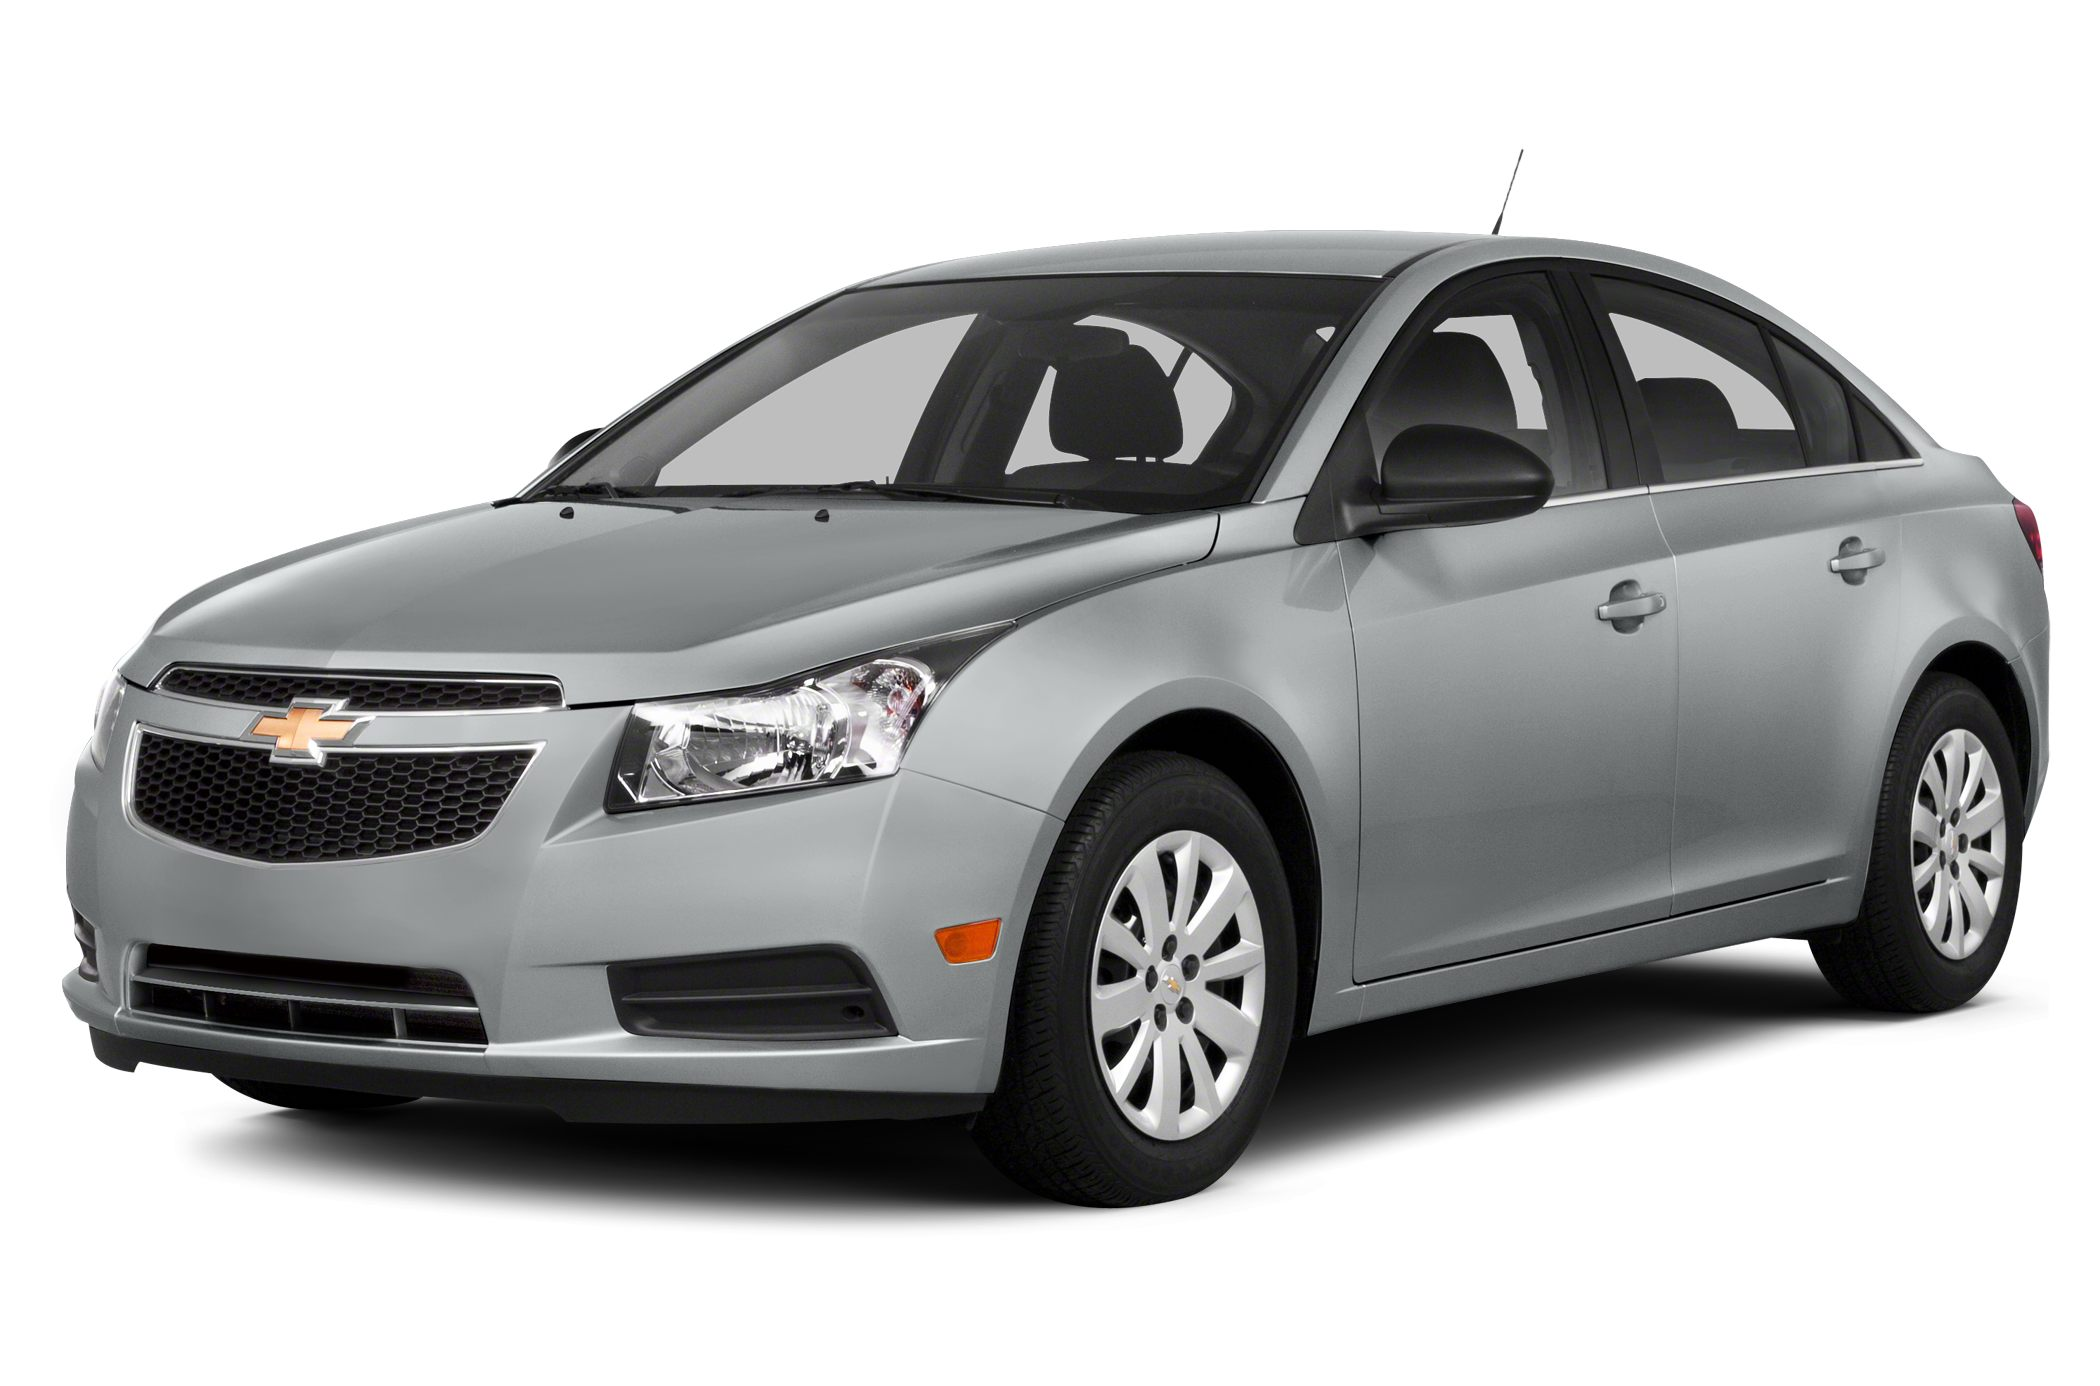 2014 Chevrolet Cruze 2LT Sedan for sale in Long Beach for $14,995 with 36,548 miles.